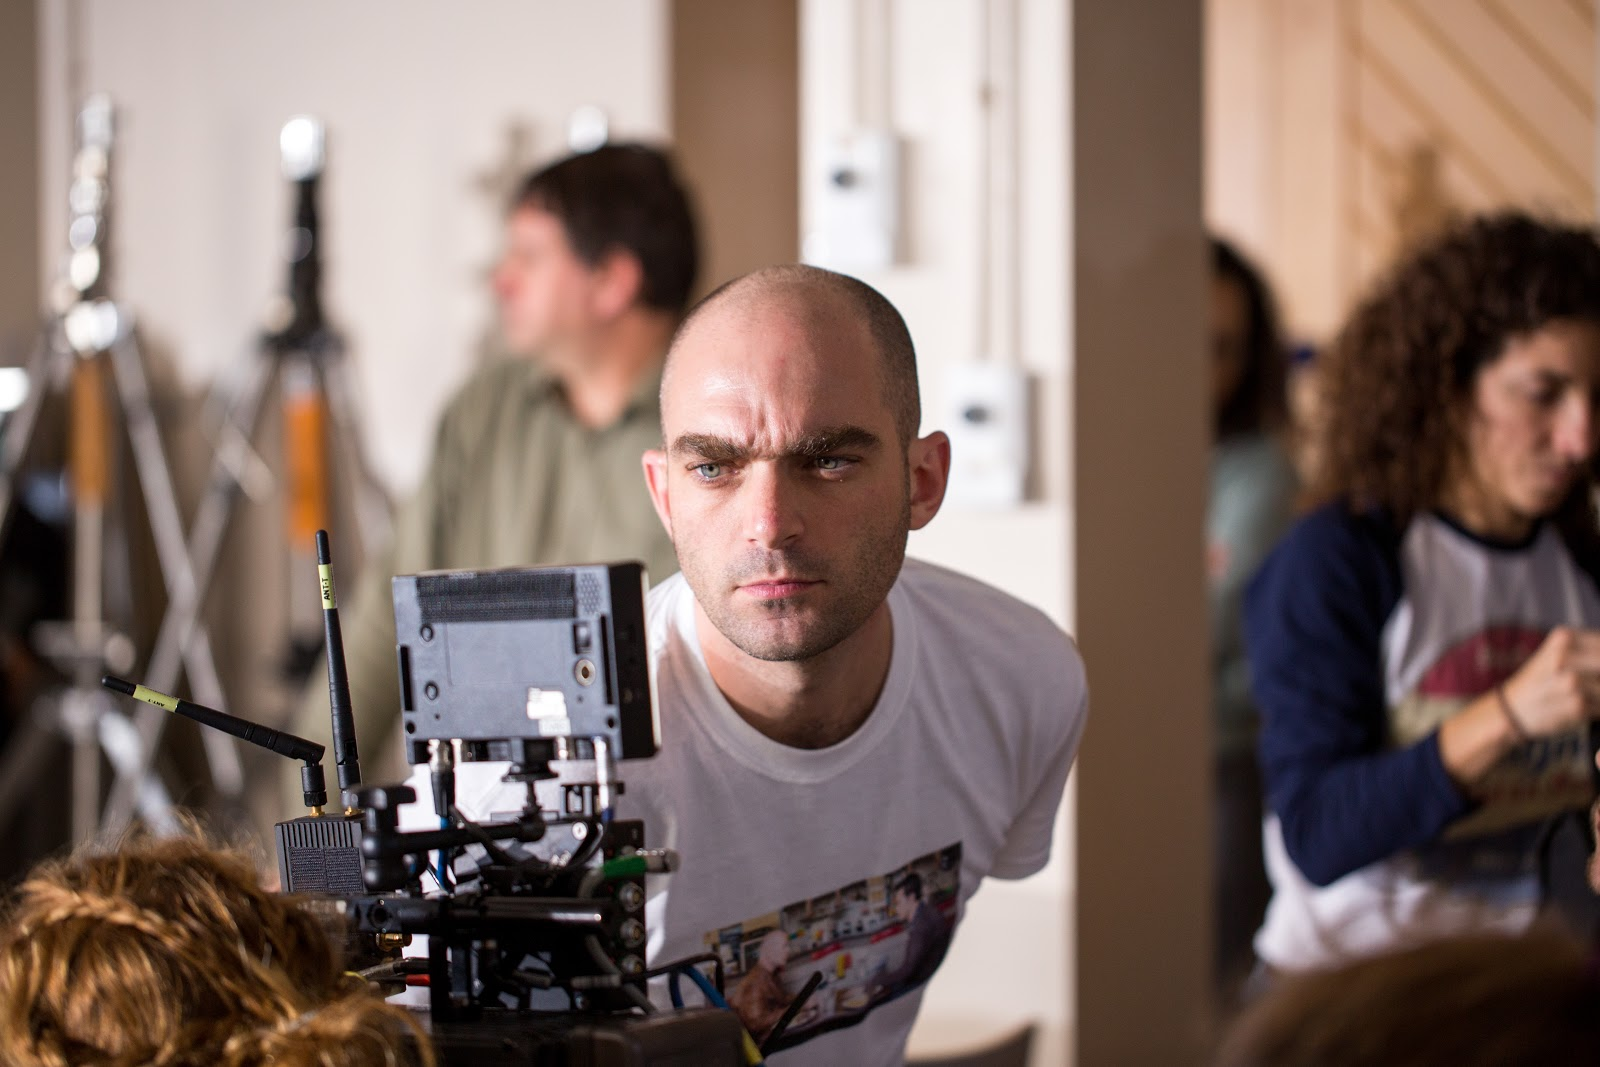 Image description: Samuel is white with blue eyes and a shaved head. Here he is wearing a casual white T-shirt and is looking into his camera viewfinder with a focused expression. Samuel is in the central foreground with several people behind him in blurred focus.